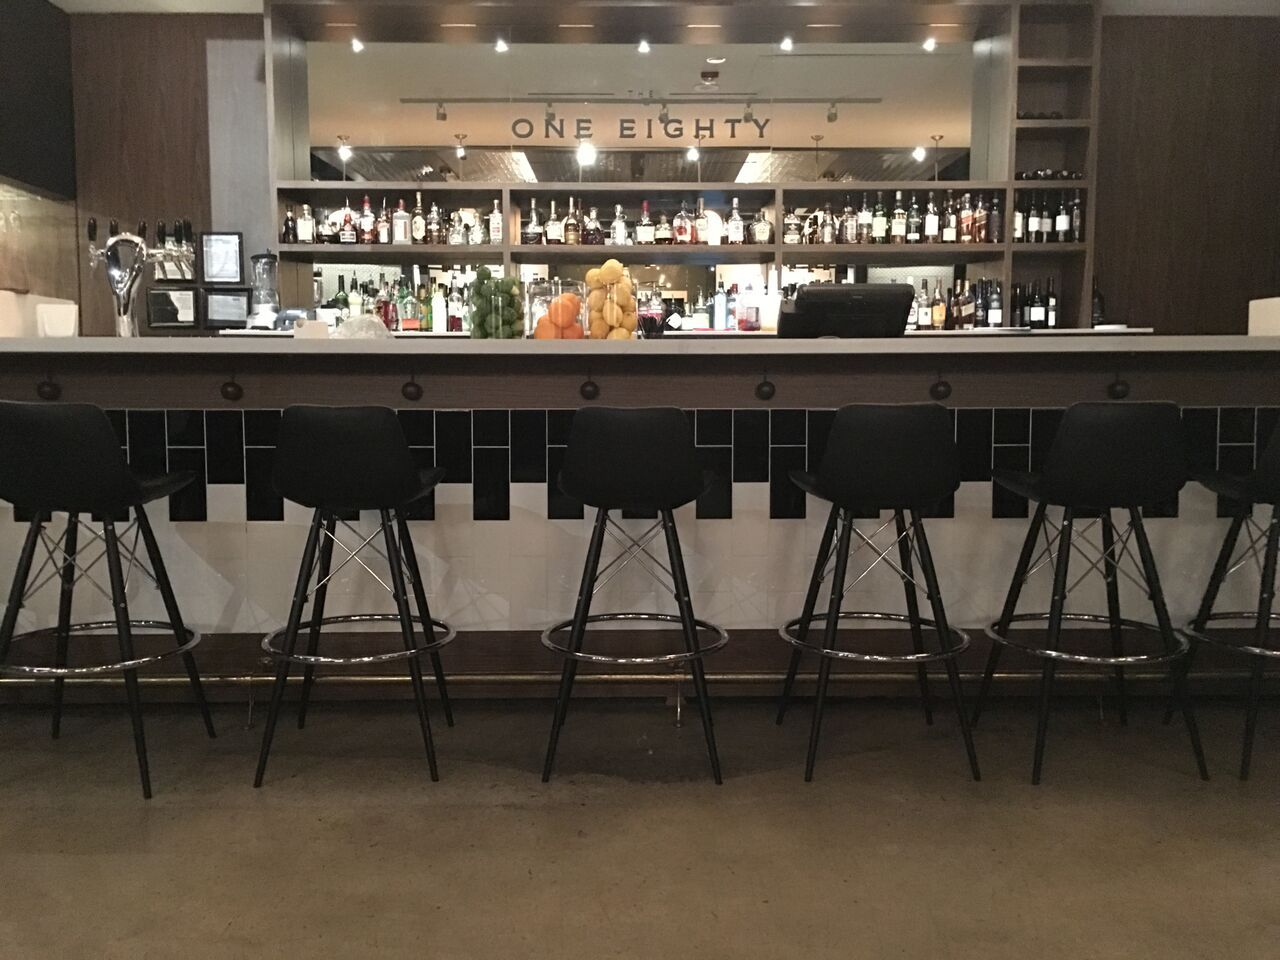 Contemporary Bar Stools From Furniture Toronto 700 Kipling Ave